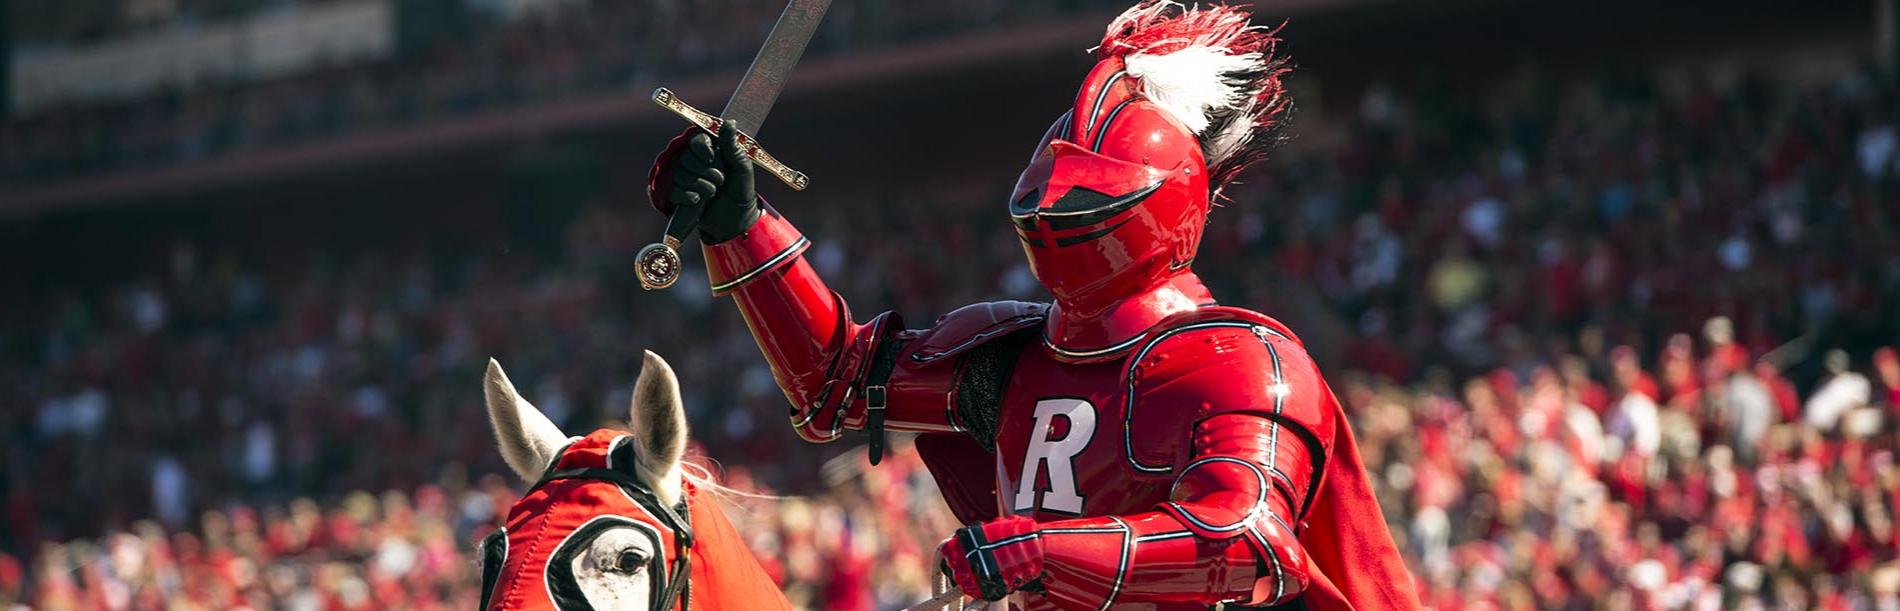 Scarlet Knight on Horseback Photo - Photographer: Nick Romanenko; Copyright: Rutgers, The State University of New Jersey.